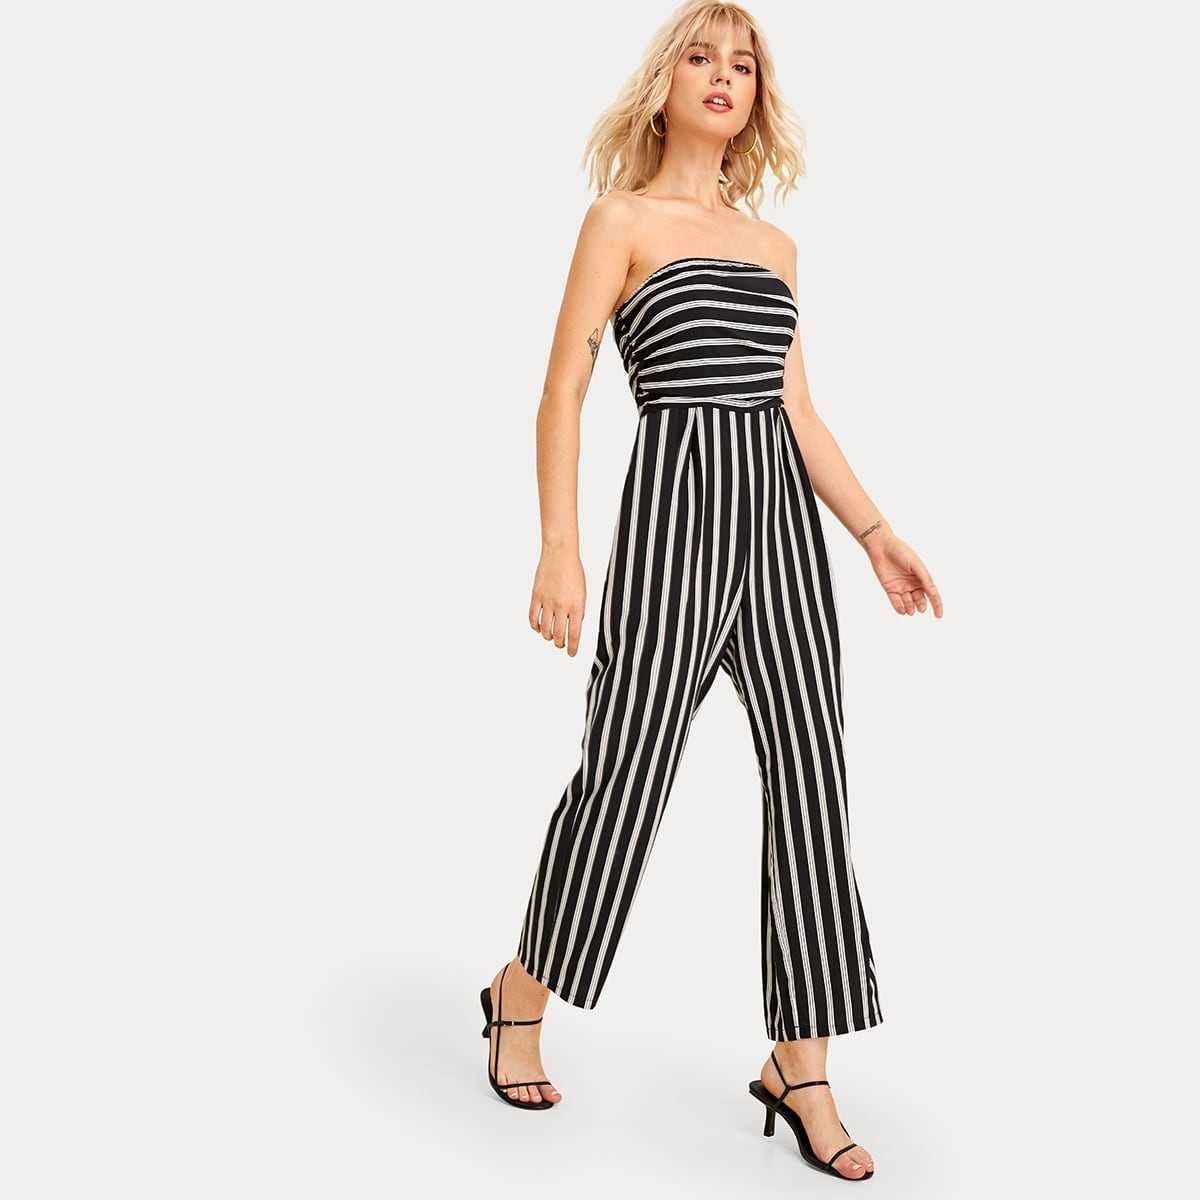 Striped Print Tube Jumpsuit in Black and White by ROMWE on GOOFASH